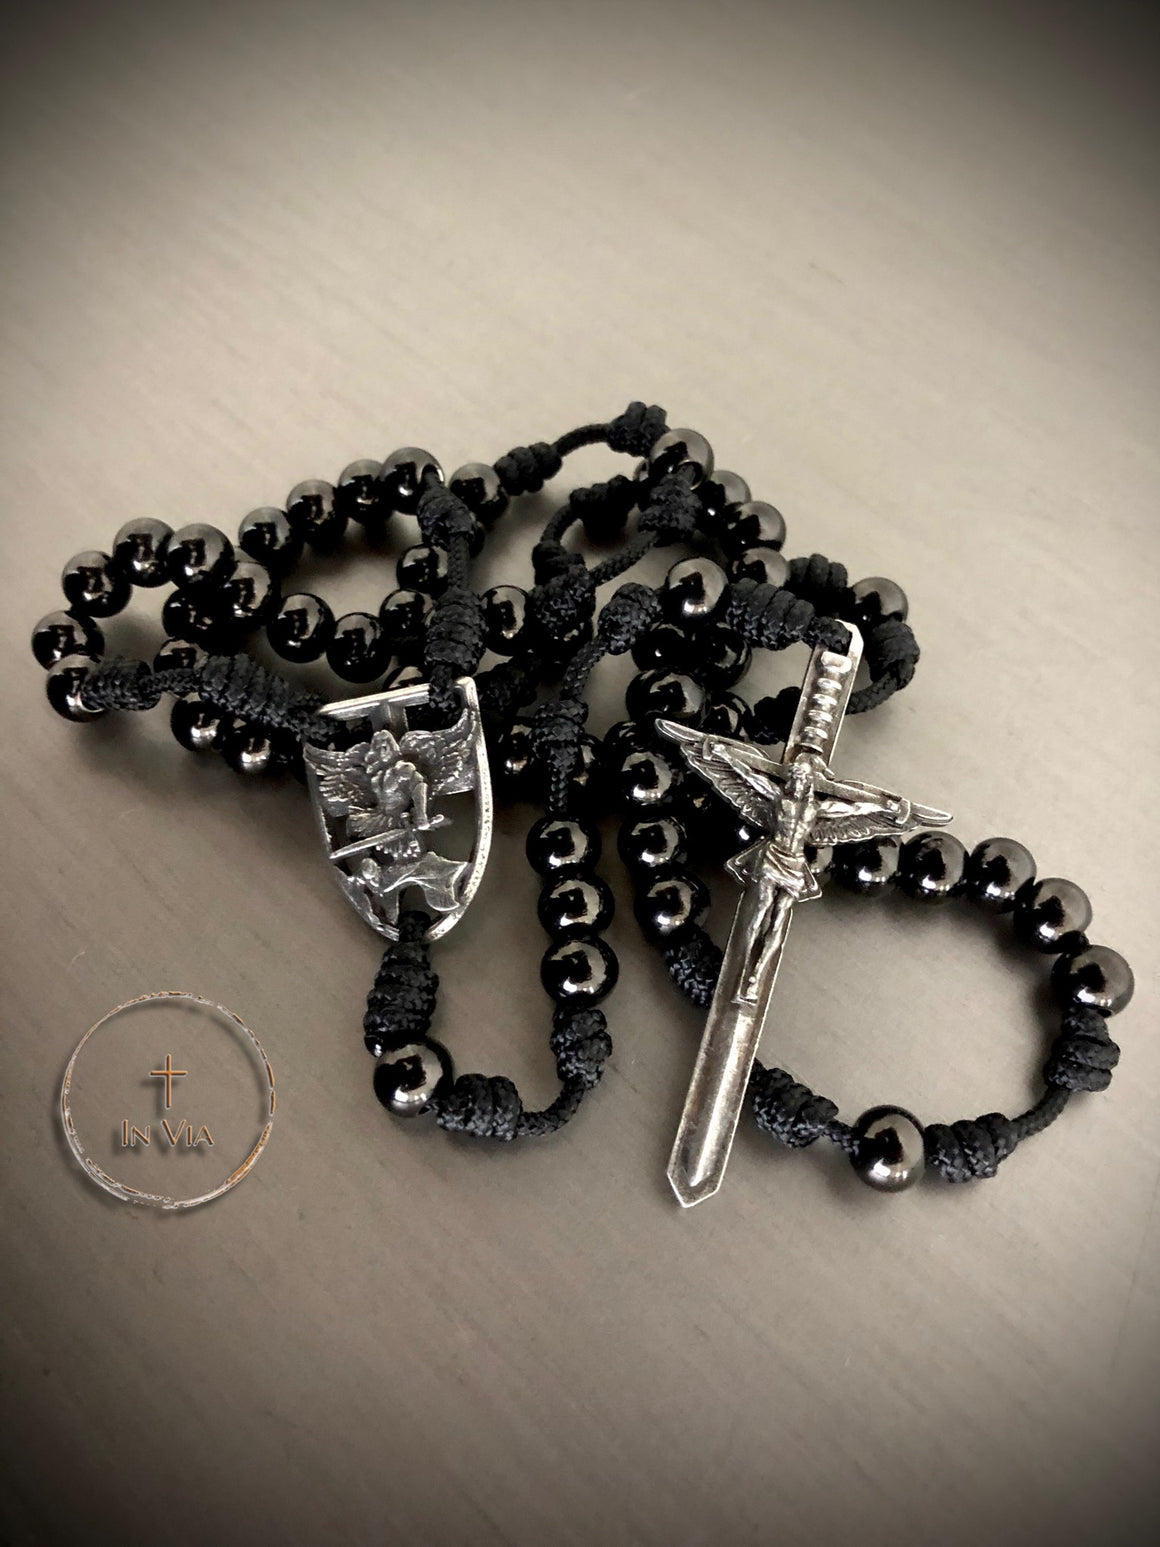 In Via St. Michael Defender Rosary -Black Stainless Steel